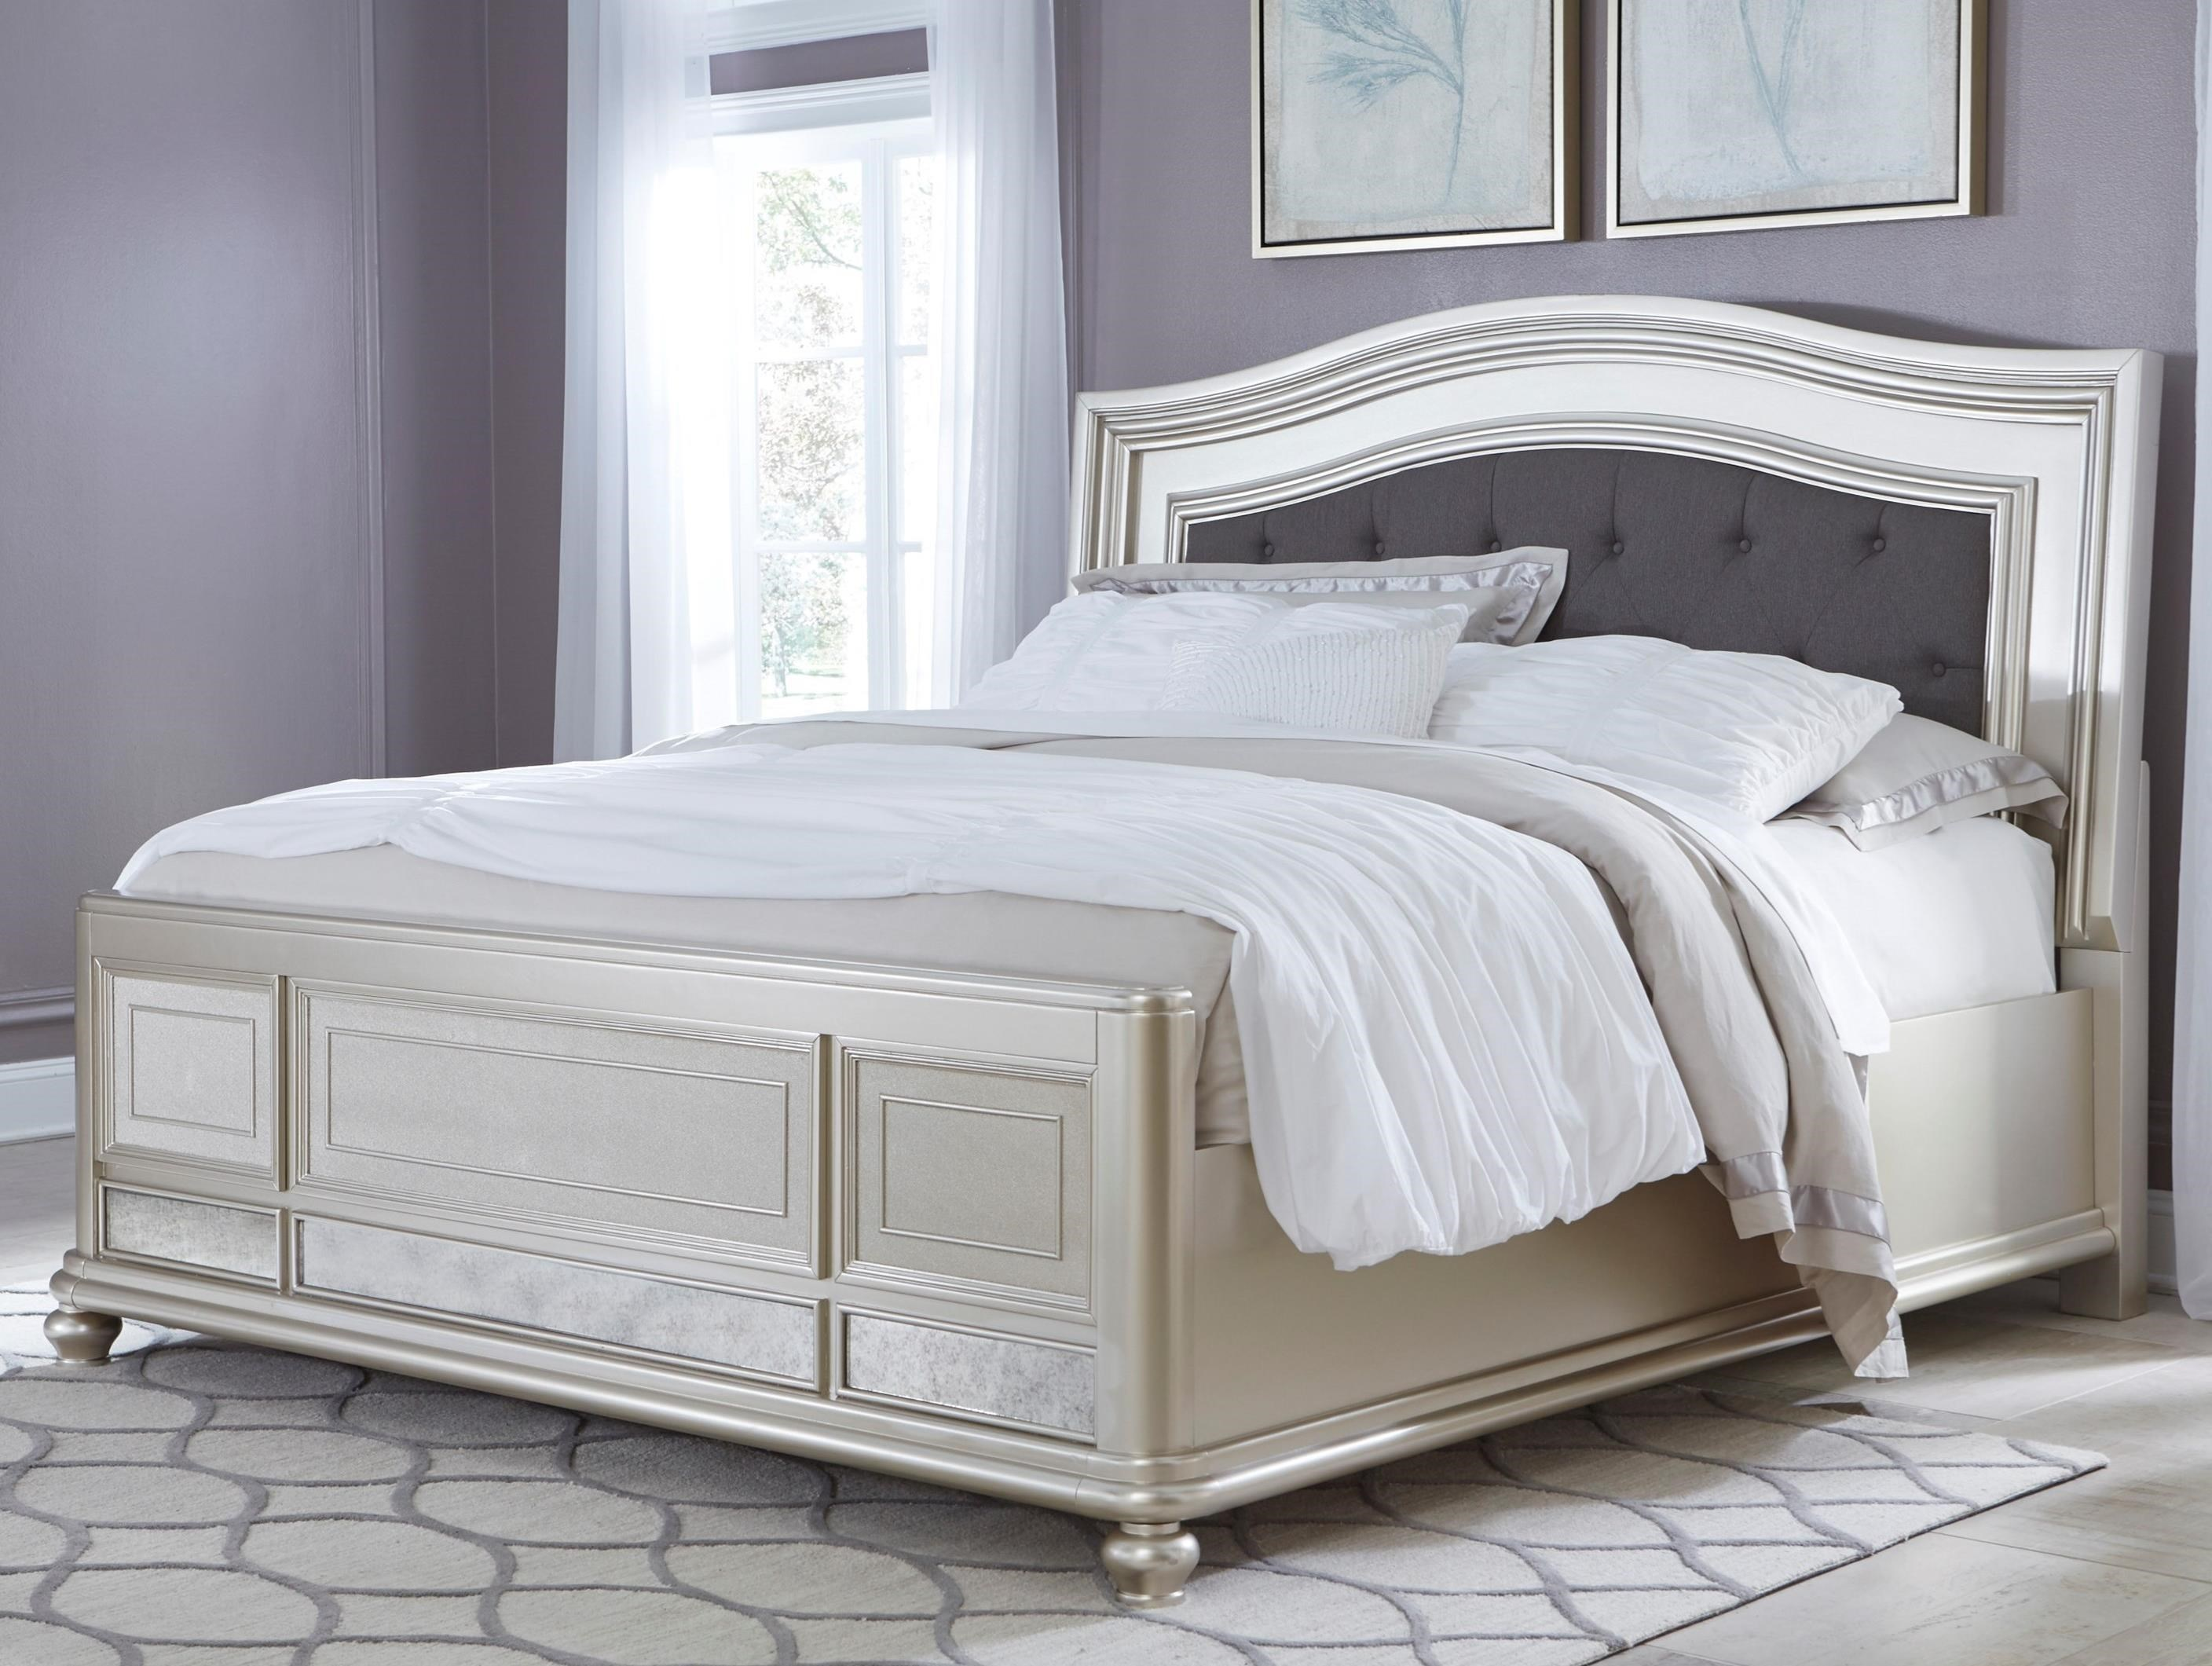 King Panel Bed With Arched Upholstered Headboard And Silver Finish Frame